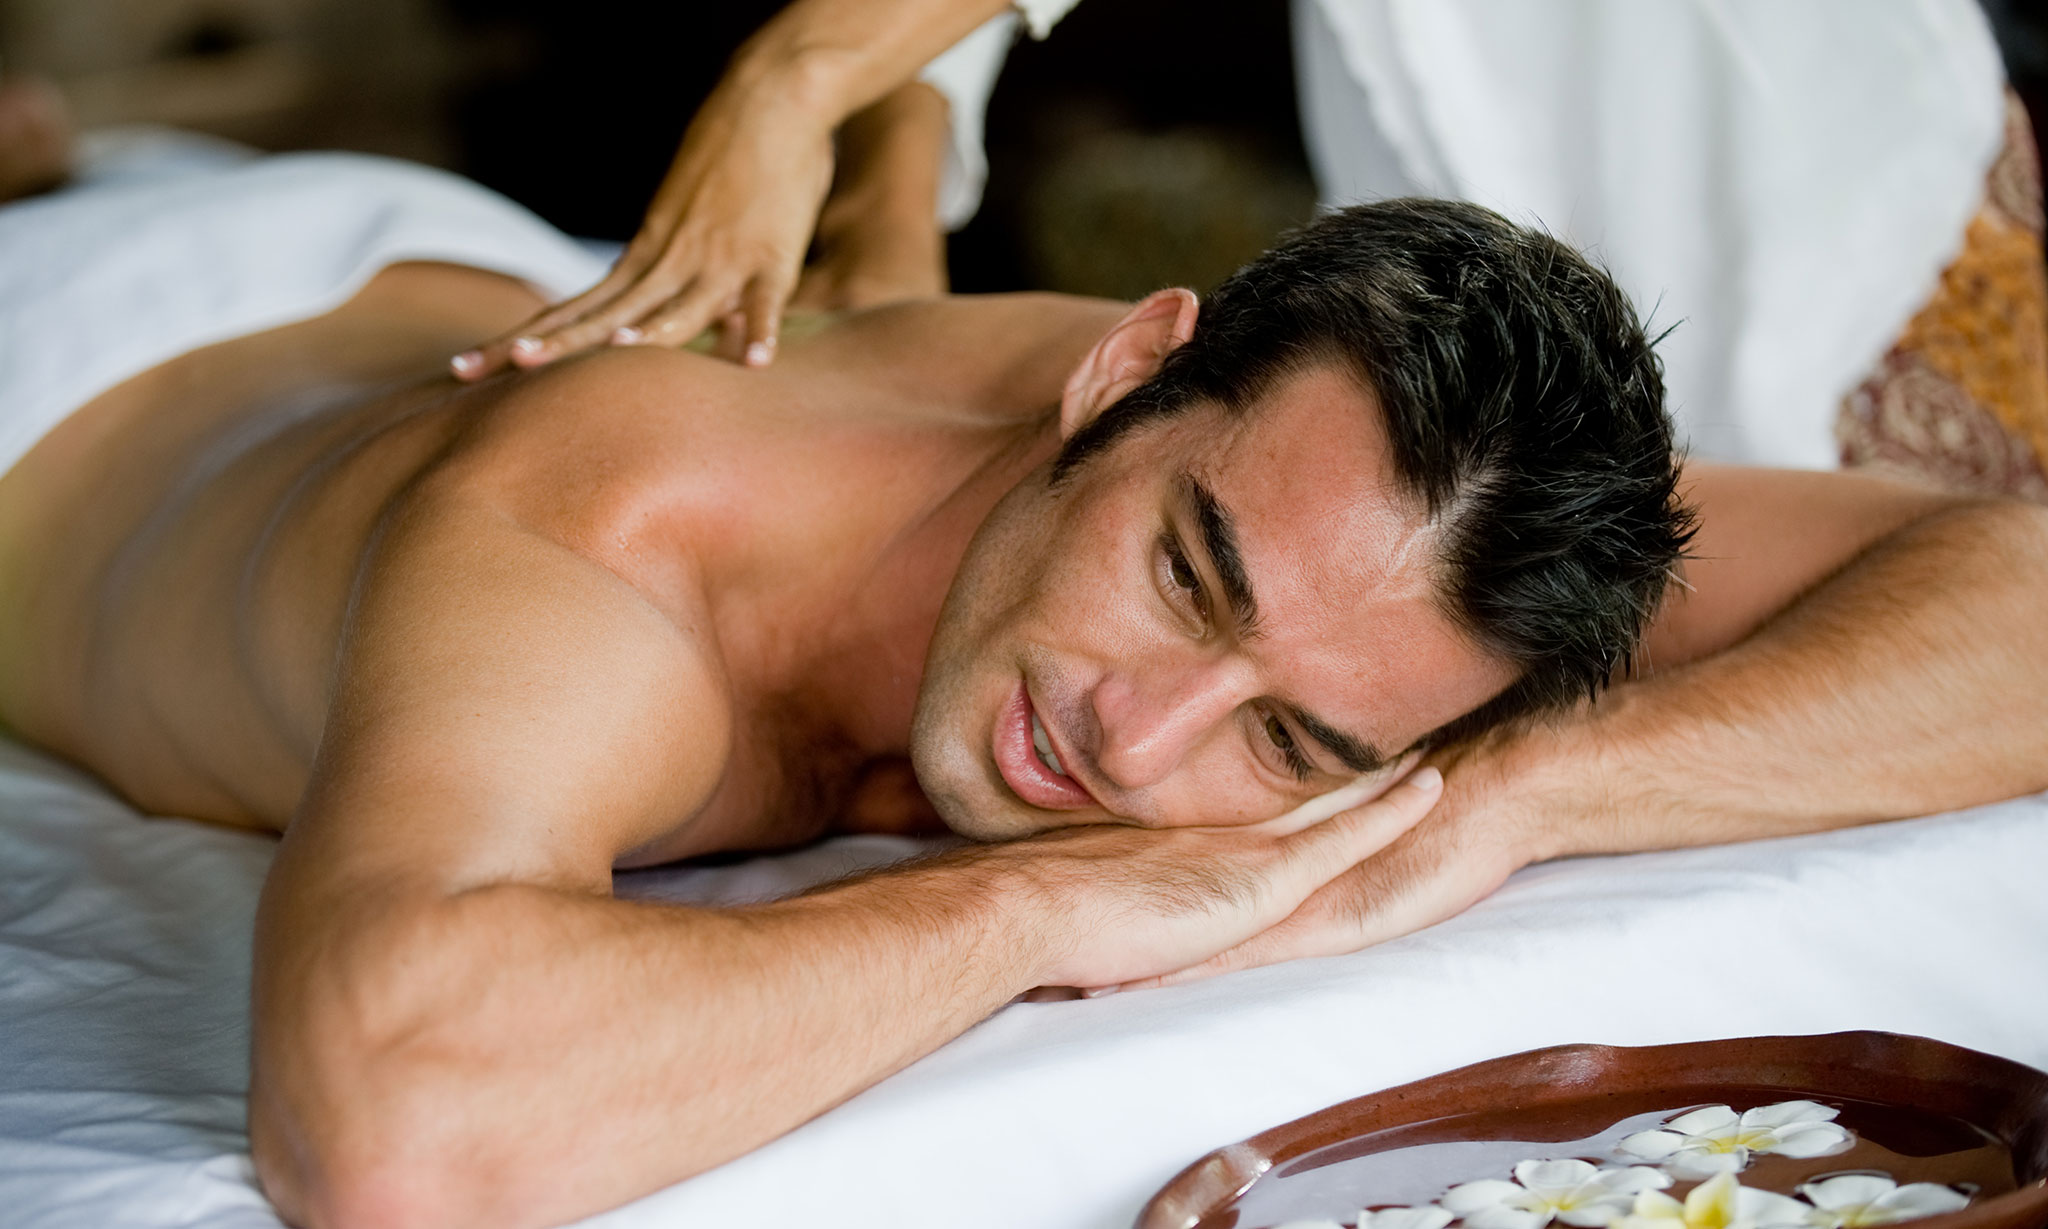 full body massage and more at alcor spa 7 outlets groupon deals online discount coupons